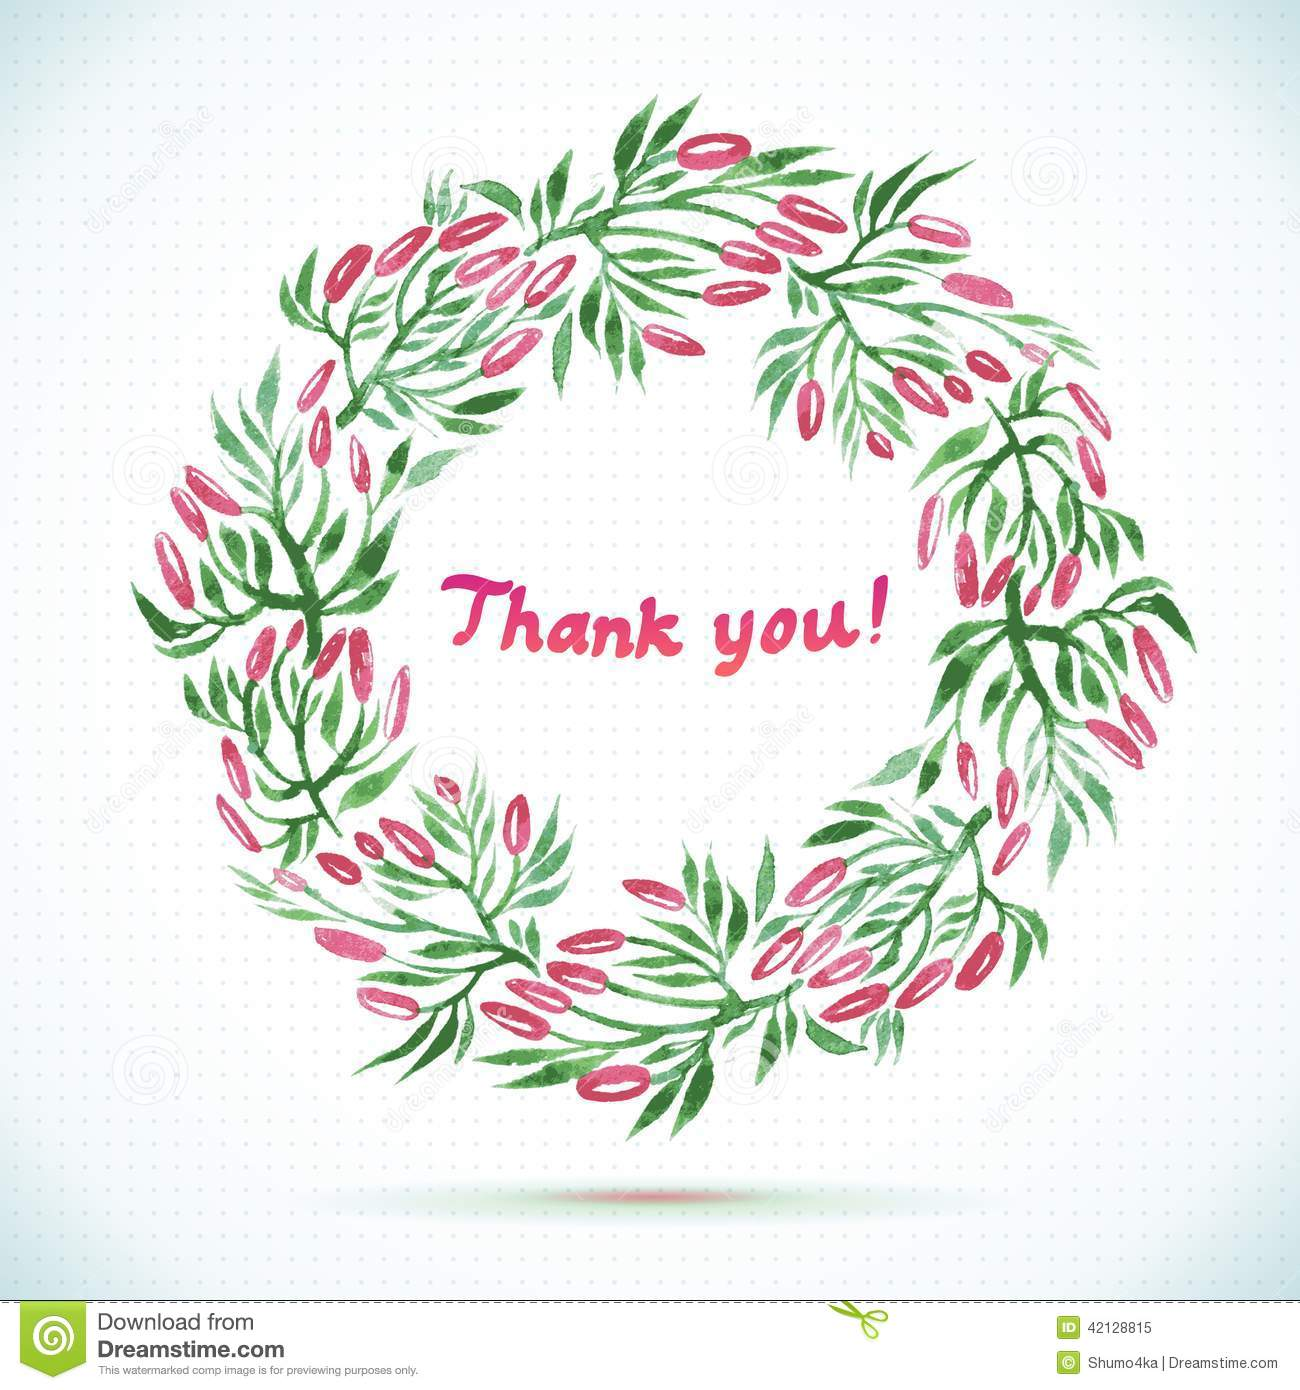 Thank You Watercolor Floral Wreath Card Stock Vector